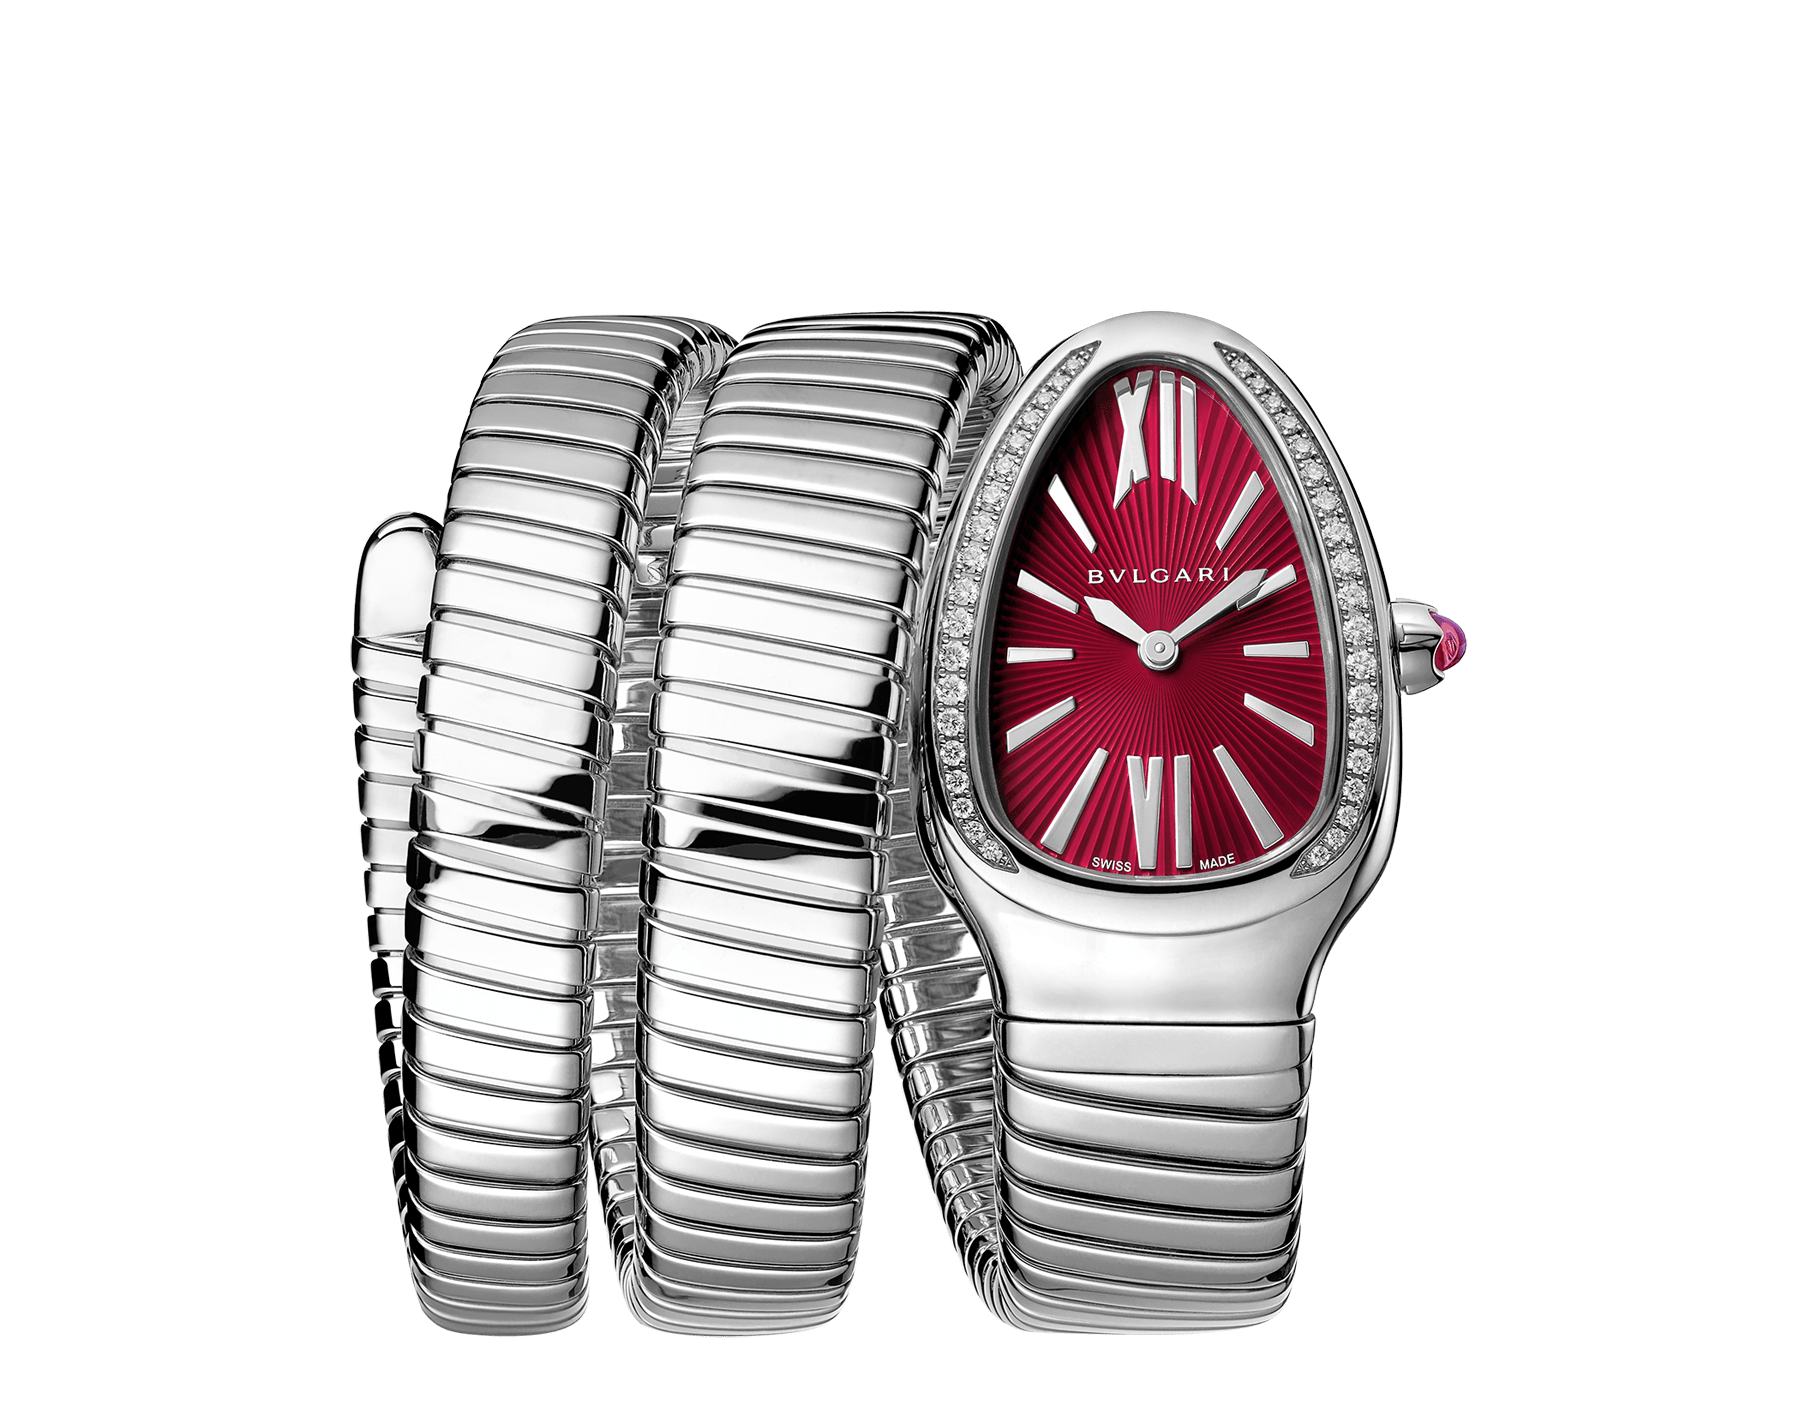 Serpenti Tubogas double spiral watch with stainless steel case set with brilliant cut diamonds, red lacquered dial and stainless steel bracelet. 102682 image 1